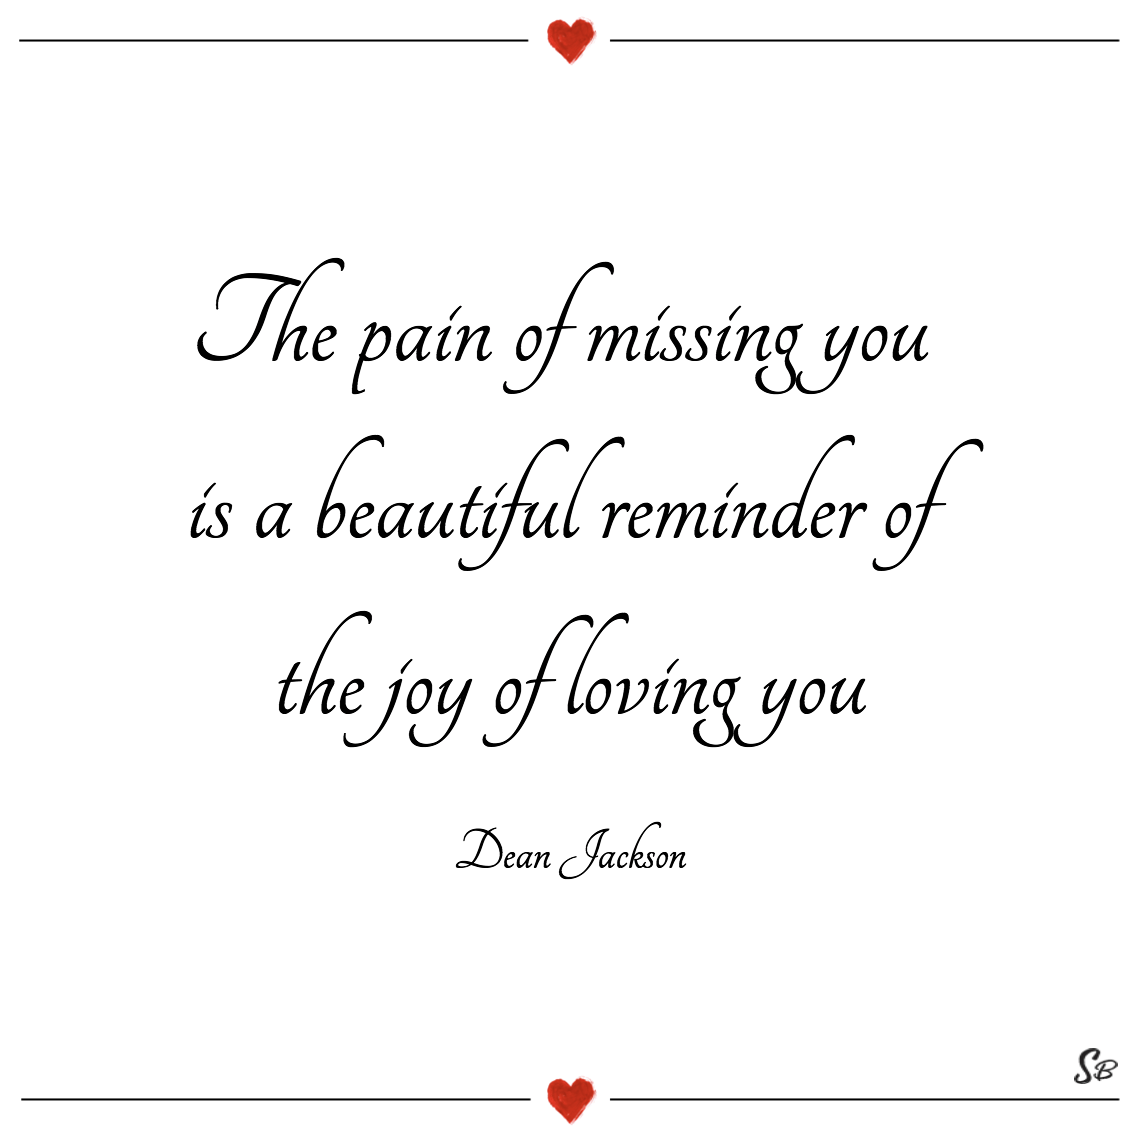 The pain of missing you is a beautiful reminder of the joy of loving you dean jackson